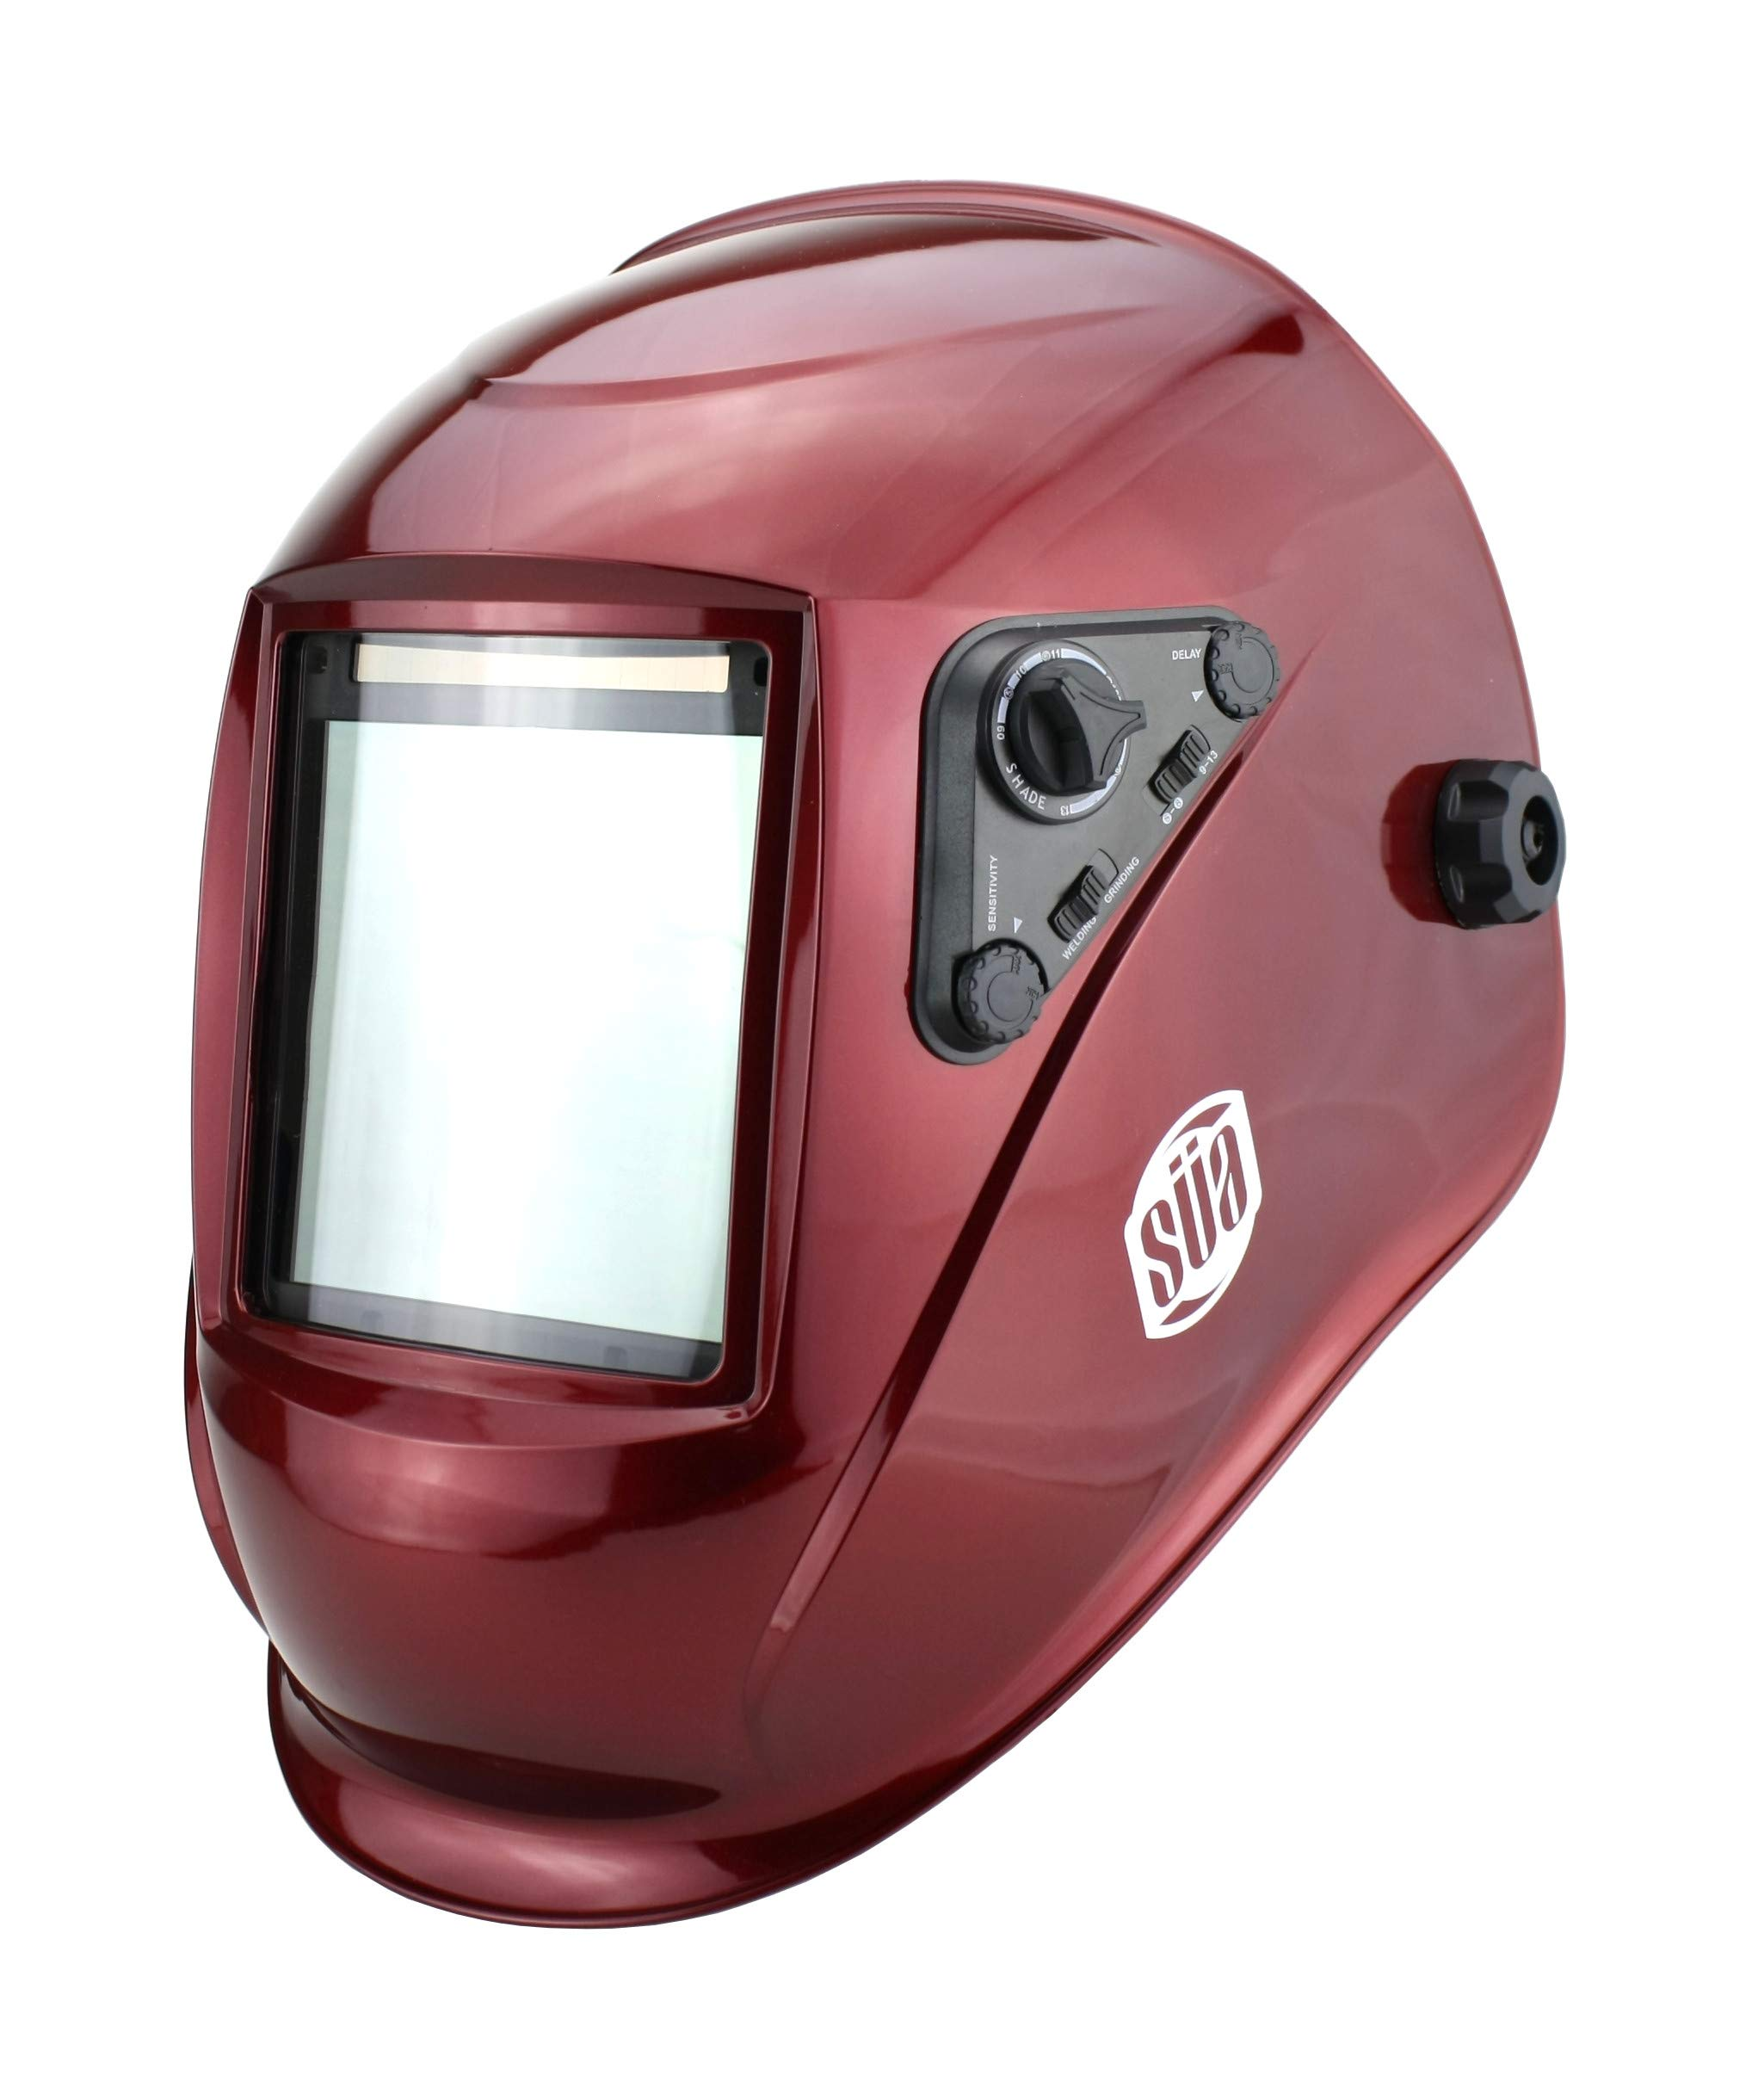 SÜA Welding Helmet - Model: Vector - Auto Darkening - Largest Viewing Area: 4'' x 4'' - Photovoltaic Powered - Ergonomic Headgear - Color: Red by SÜA